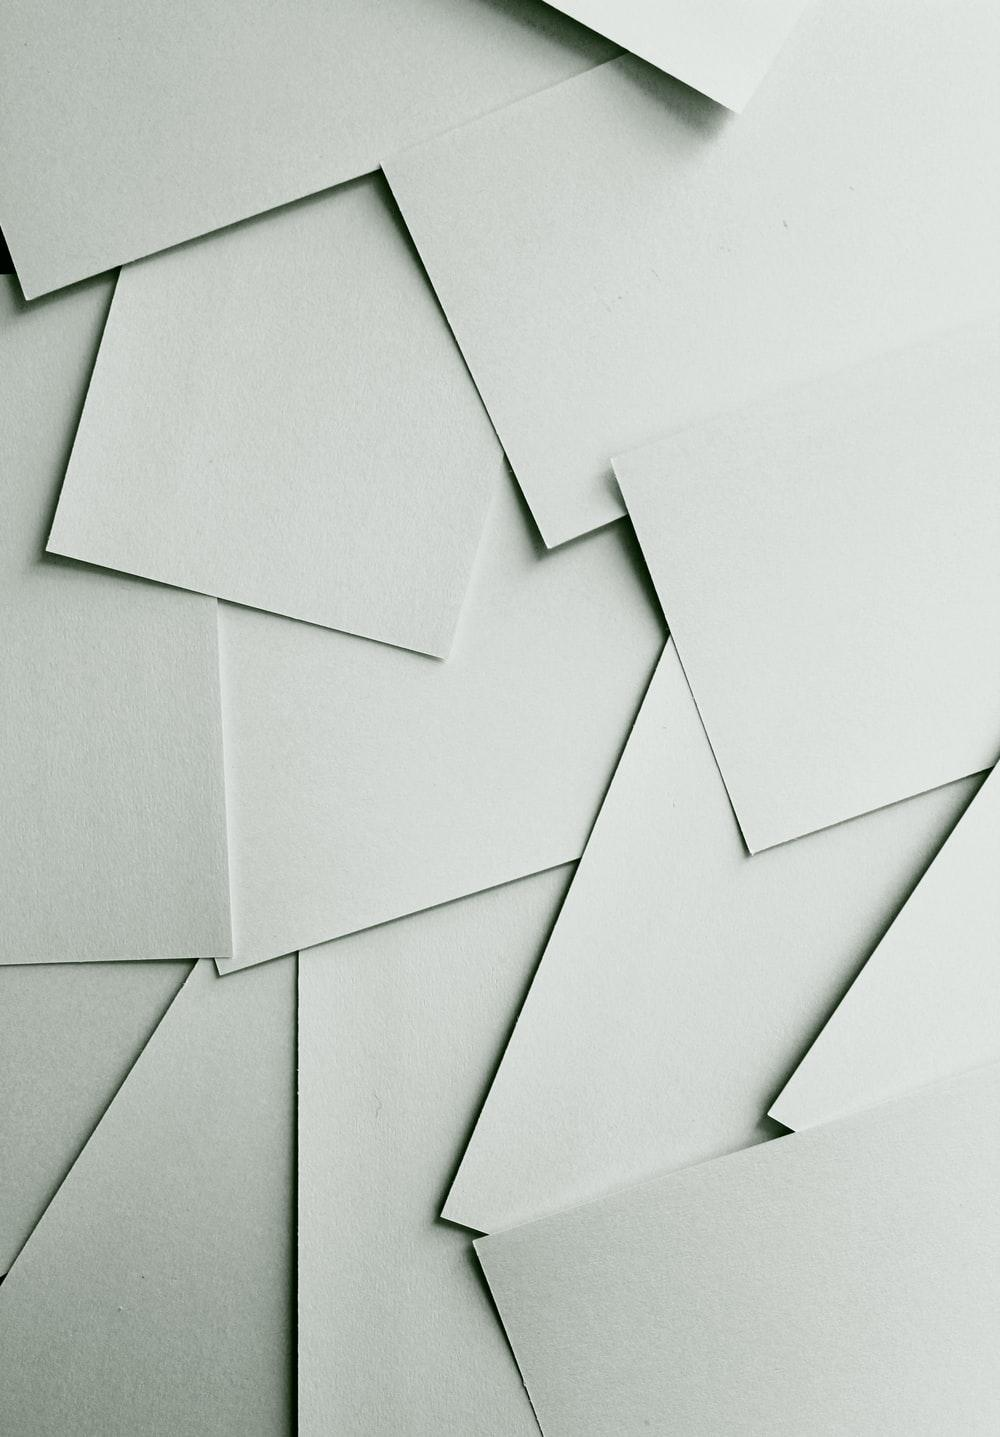 Recycled Paper: A Quick Guide for Sustainable Designers